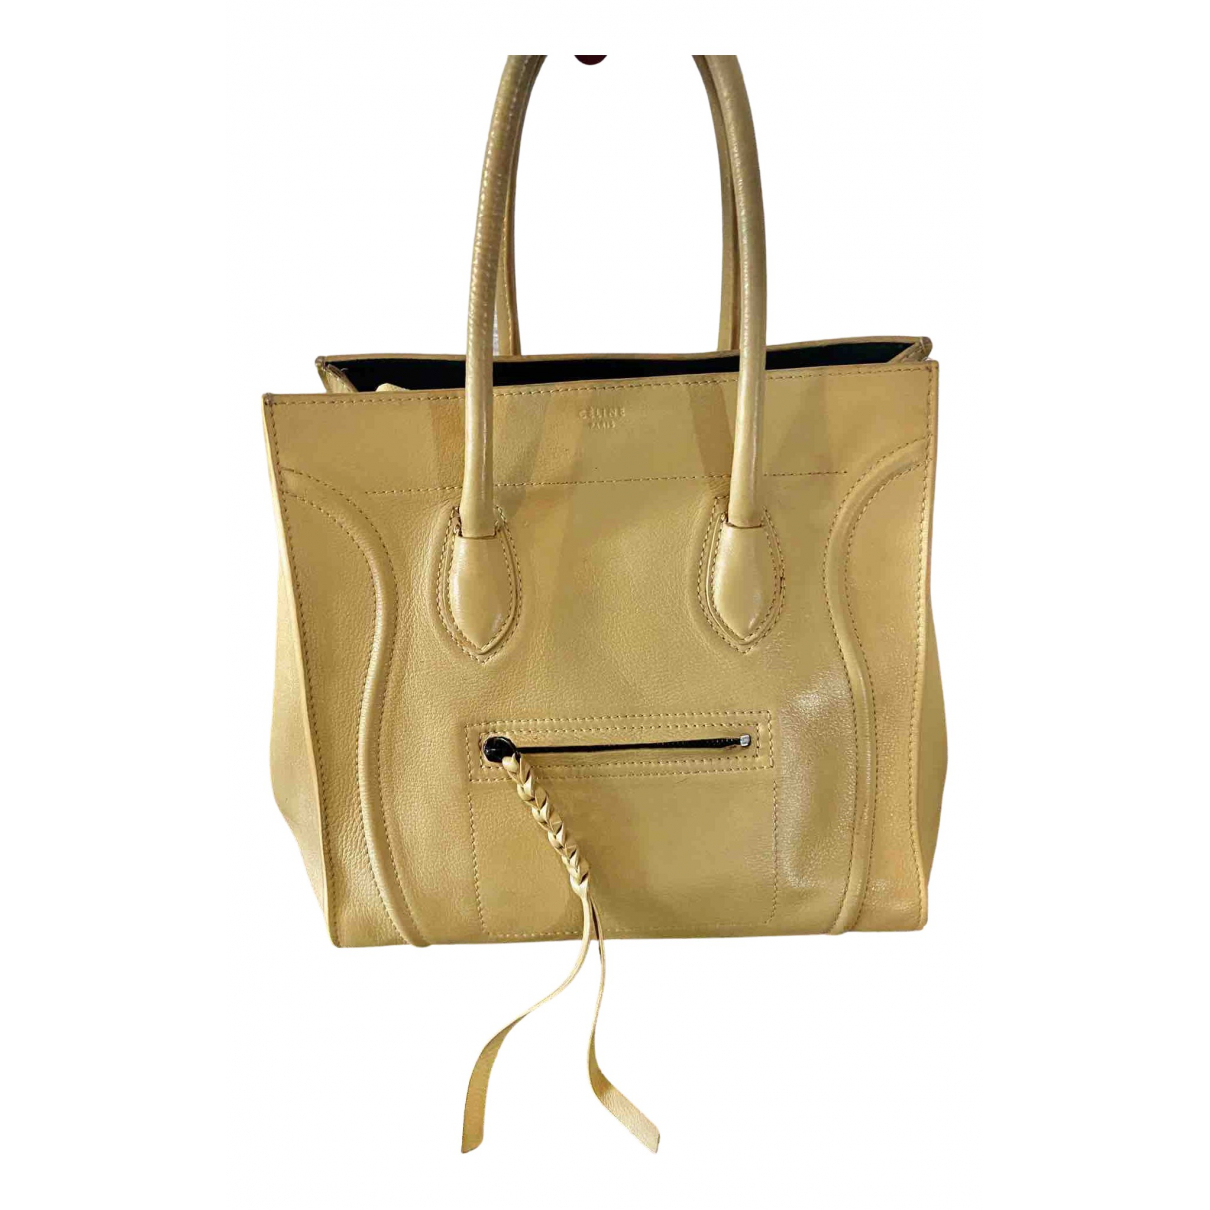 Celine Luggage Phantom Yellow Leather handbag for Women N